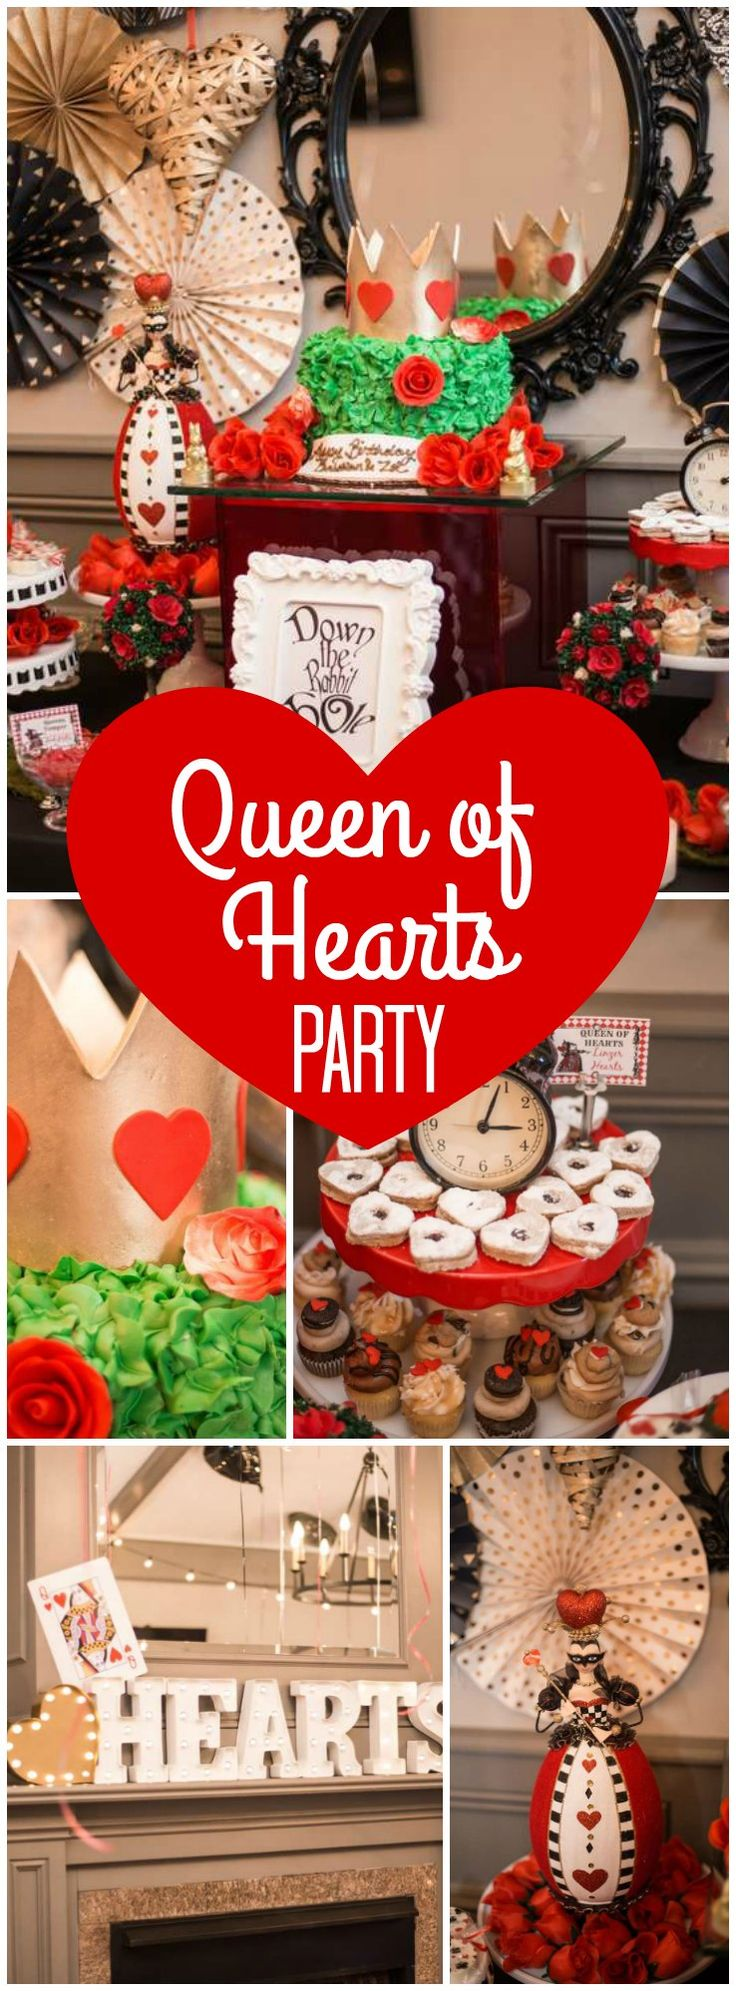 Best 25+ Party queen ideas on Pinterest | Royal party, Royal birthday  parties and DIY birthday tiara